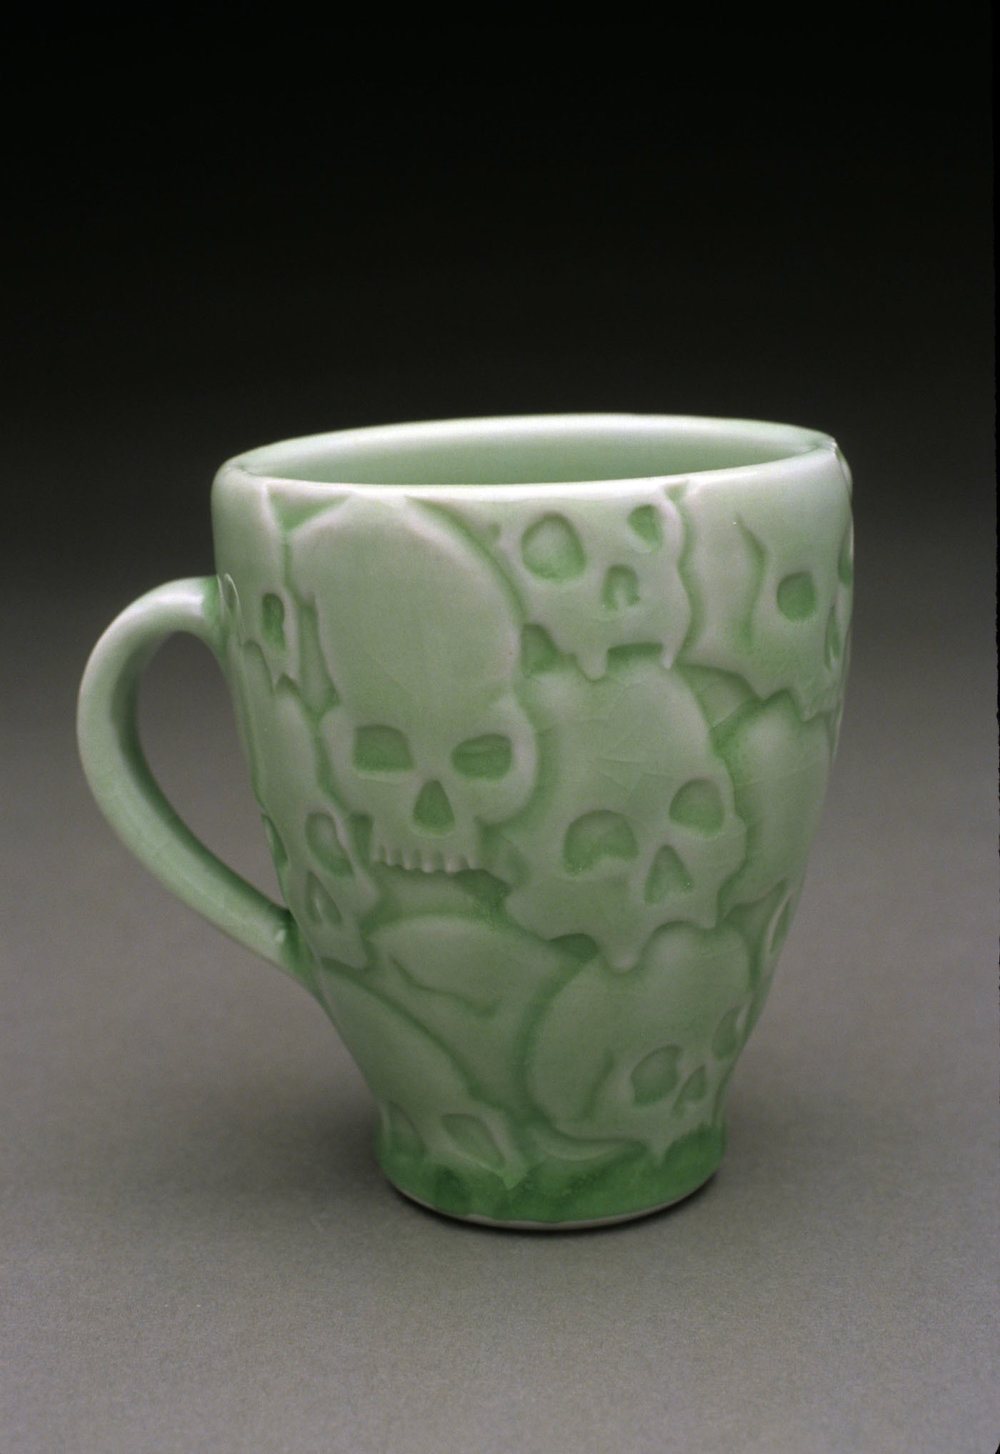 """Killing Fields Mug"" by Steven Cheek, Porcelain, 4.5x3.5x4in, 2017, POR"